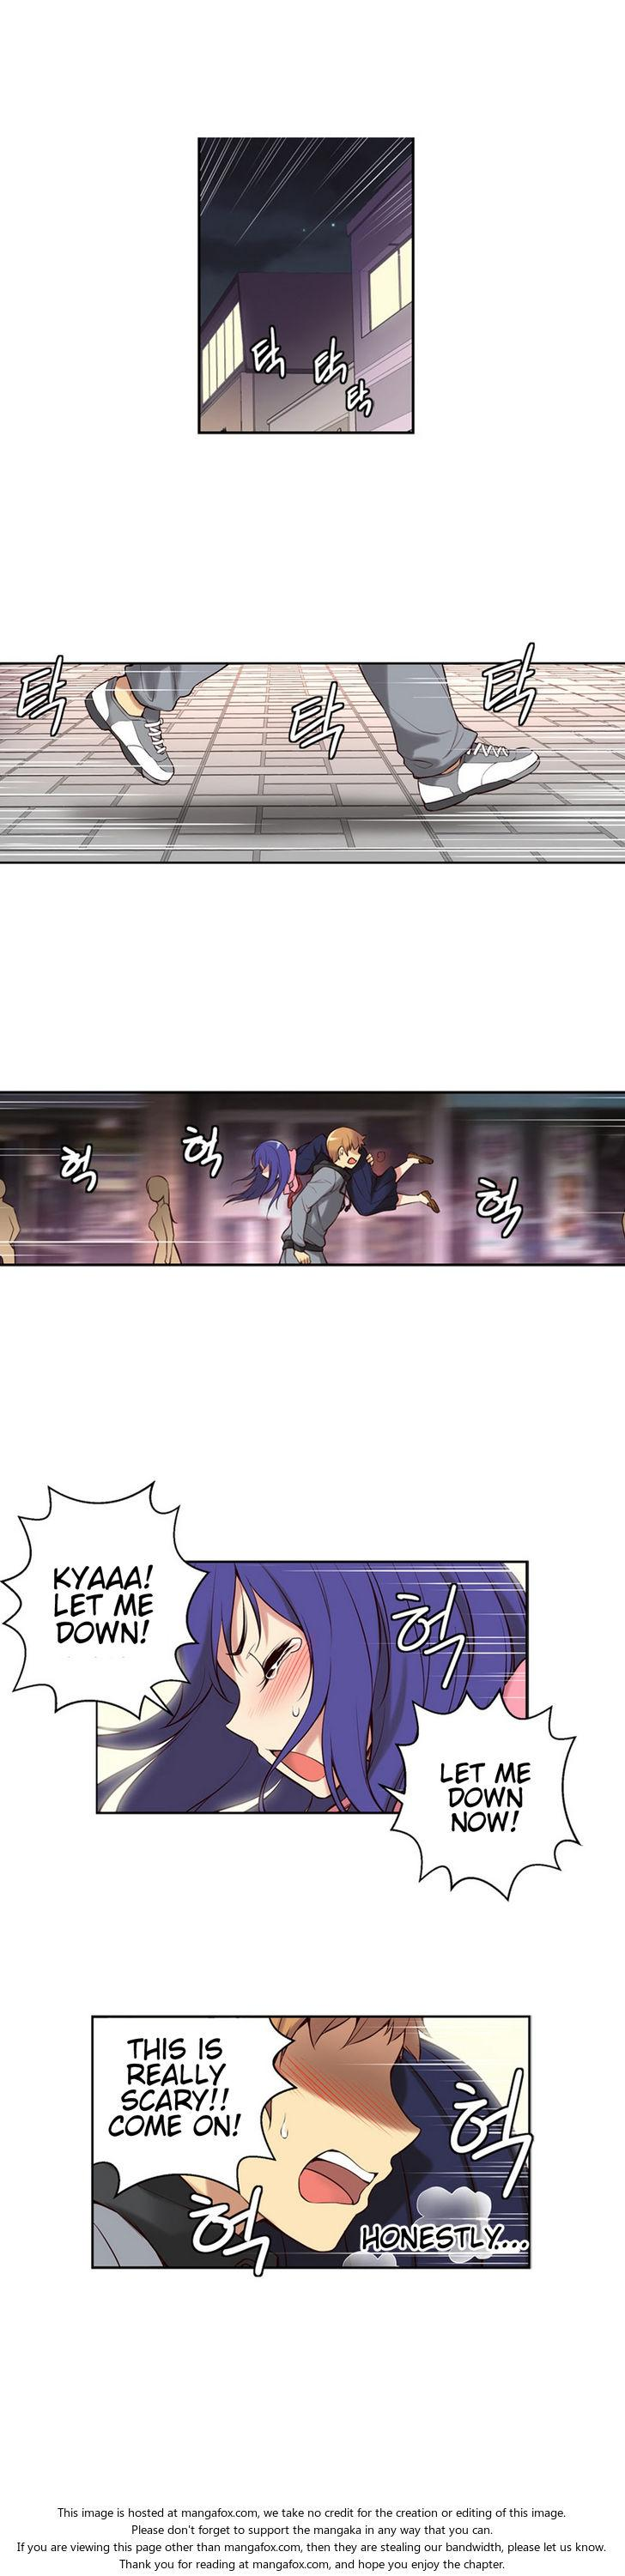 [Donggul Gom] She is Young (English) Part 1/2 43